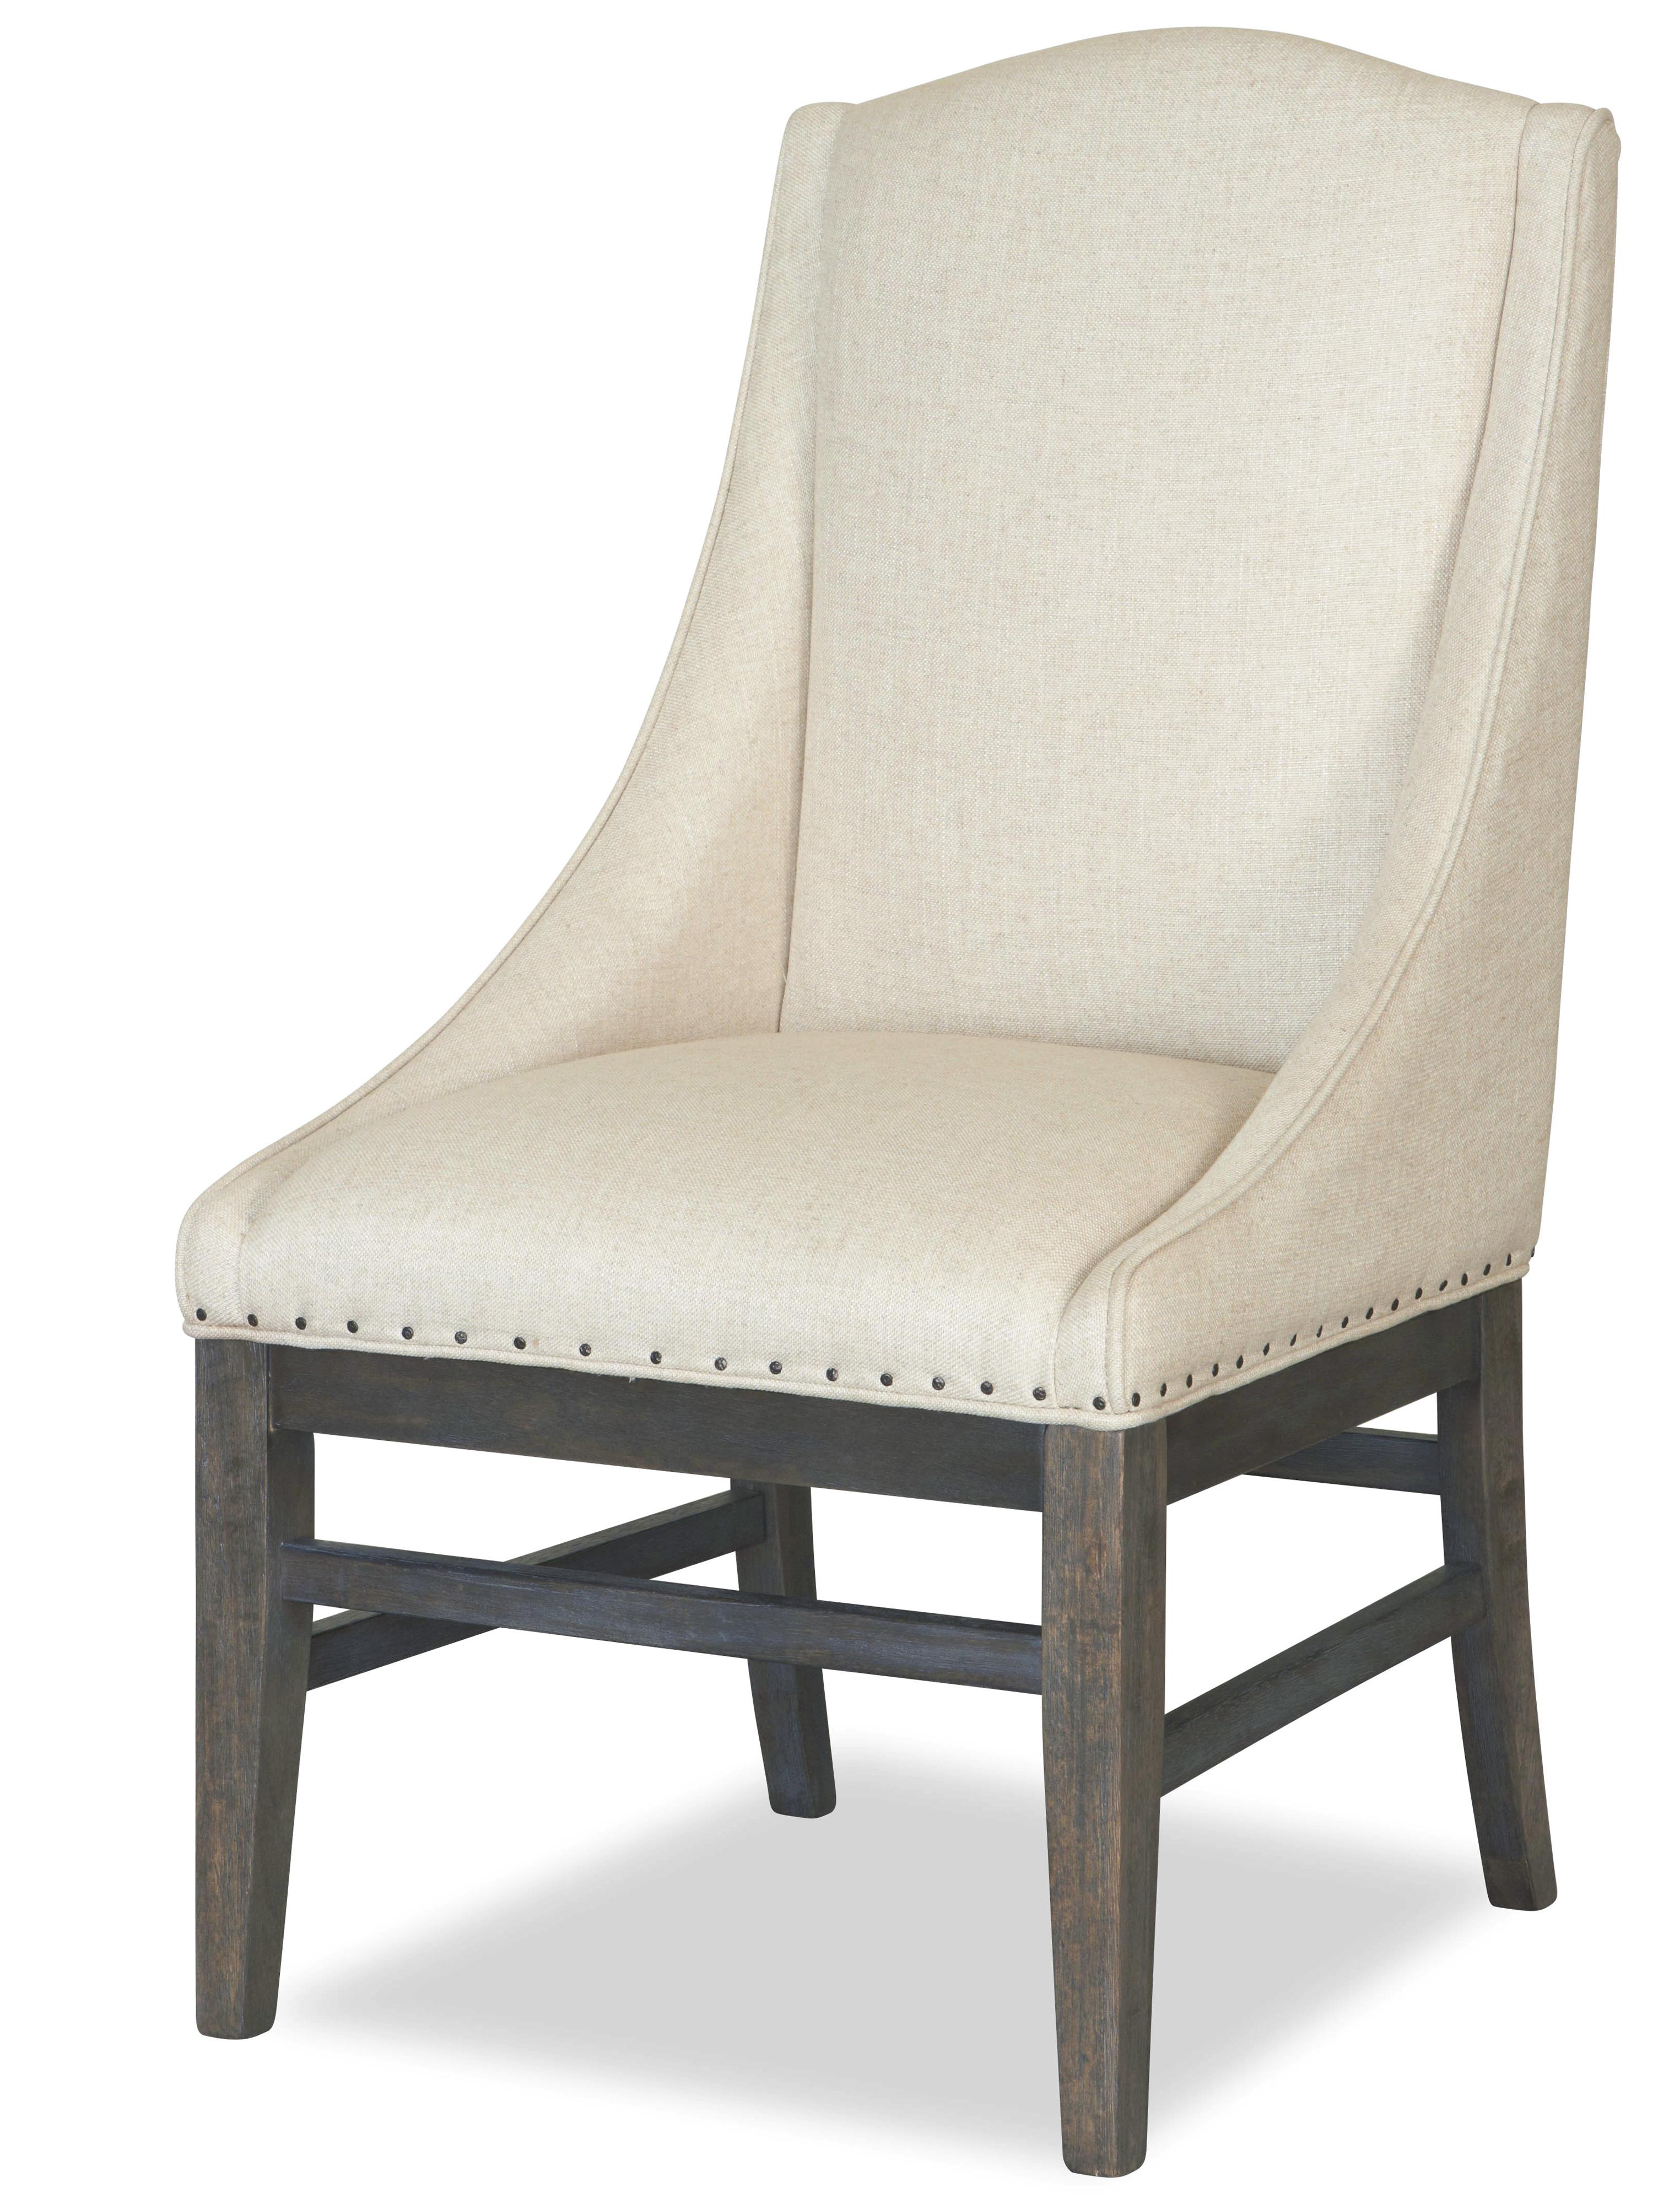 Curated Urban Arm Chair by Universal at Stoney Creek Furniture